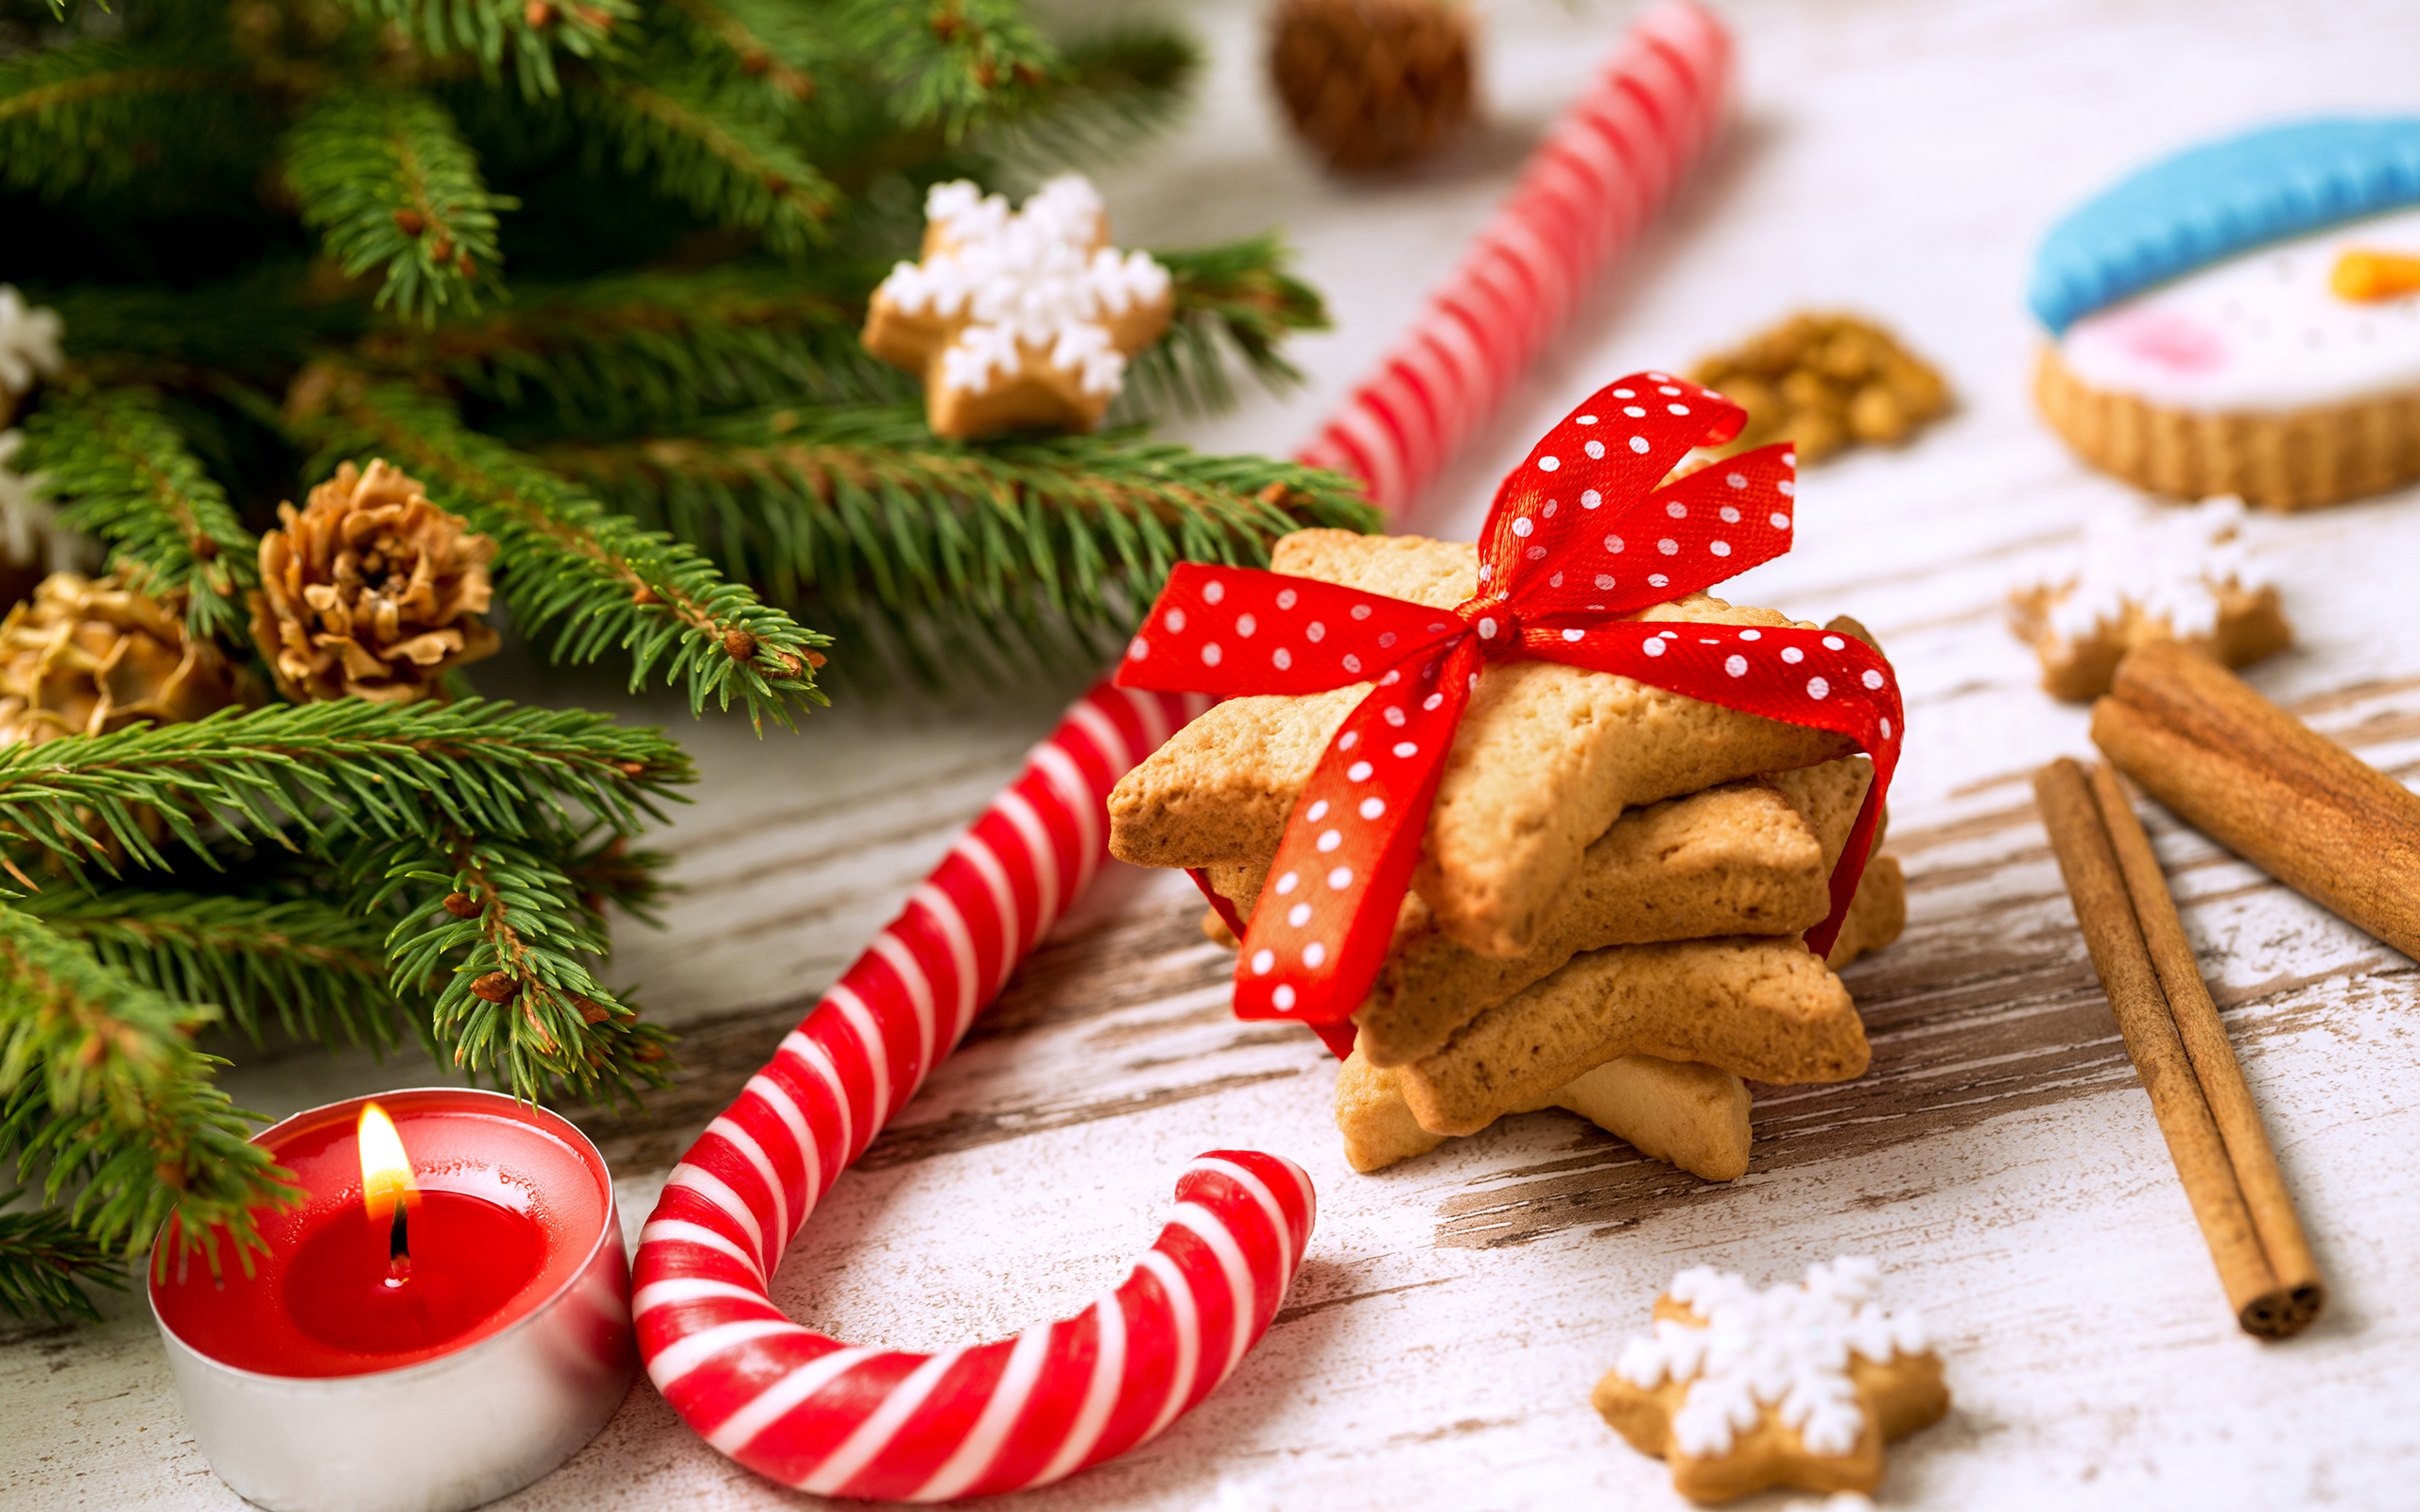 Sweet Cute Wallpapers Christmas Wallpaper With Candy Cane Gallery Yopriceville